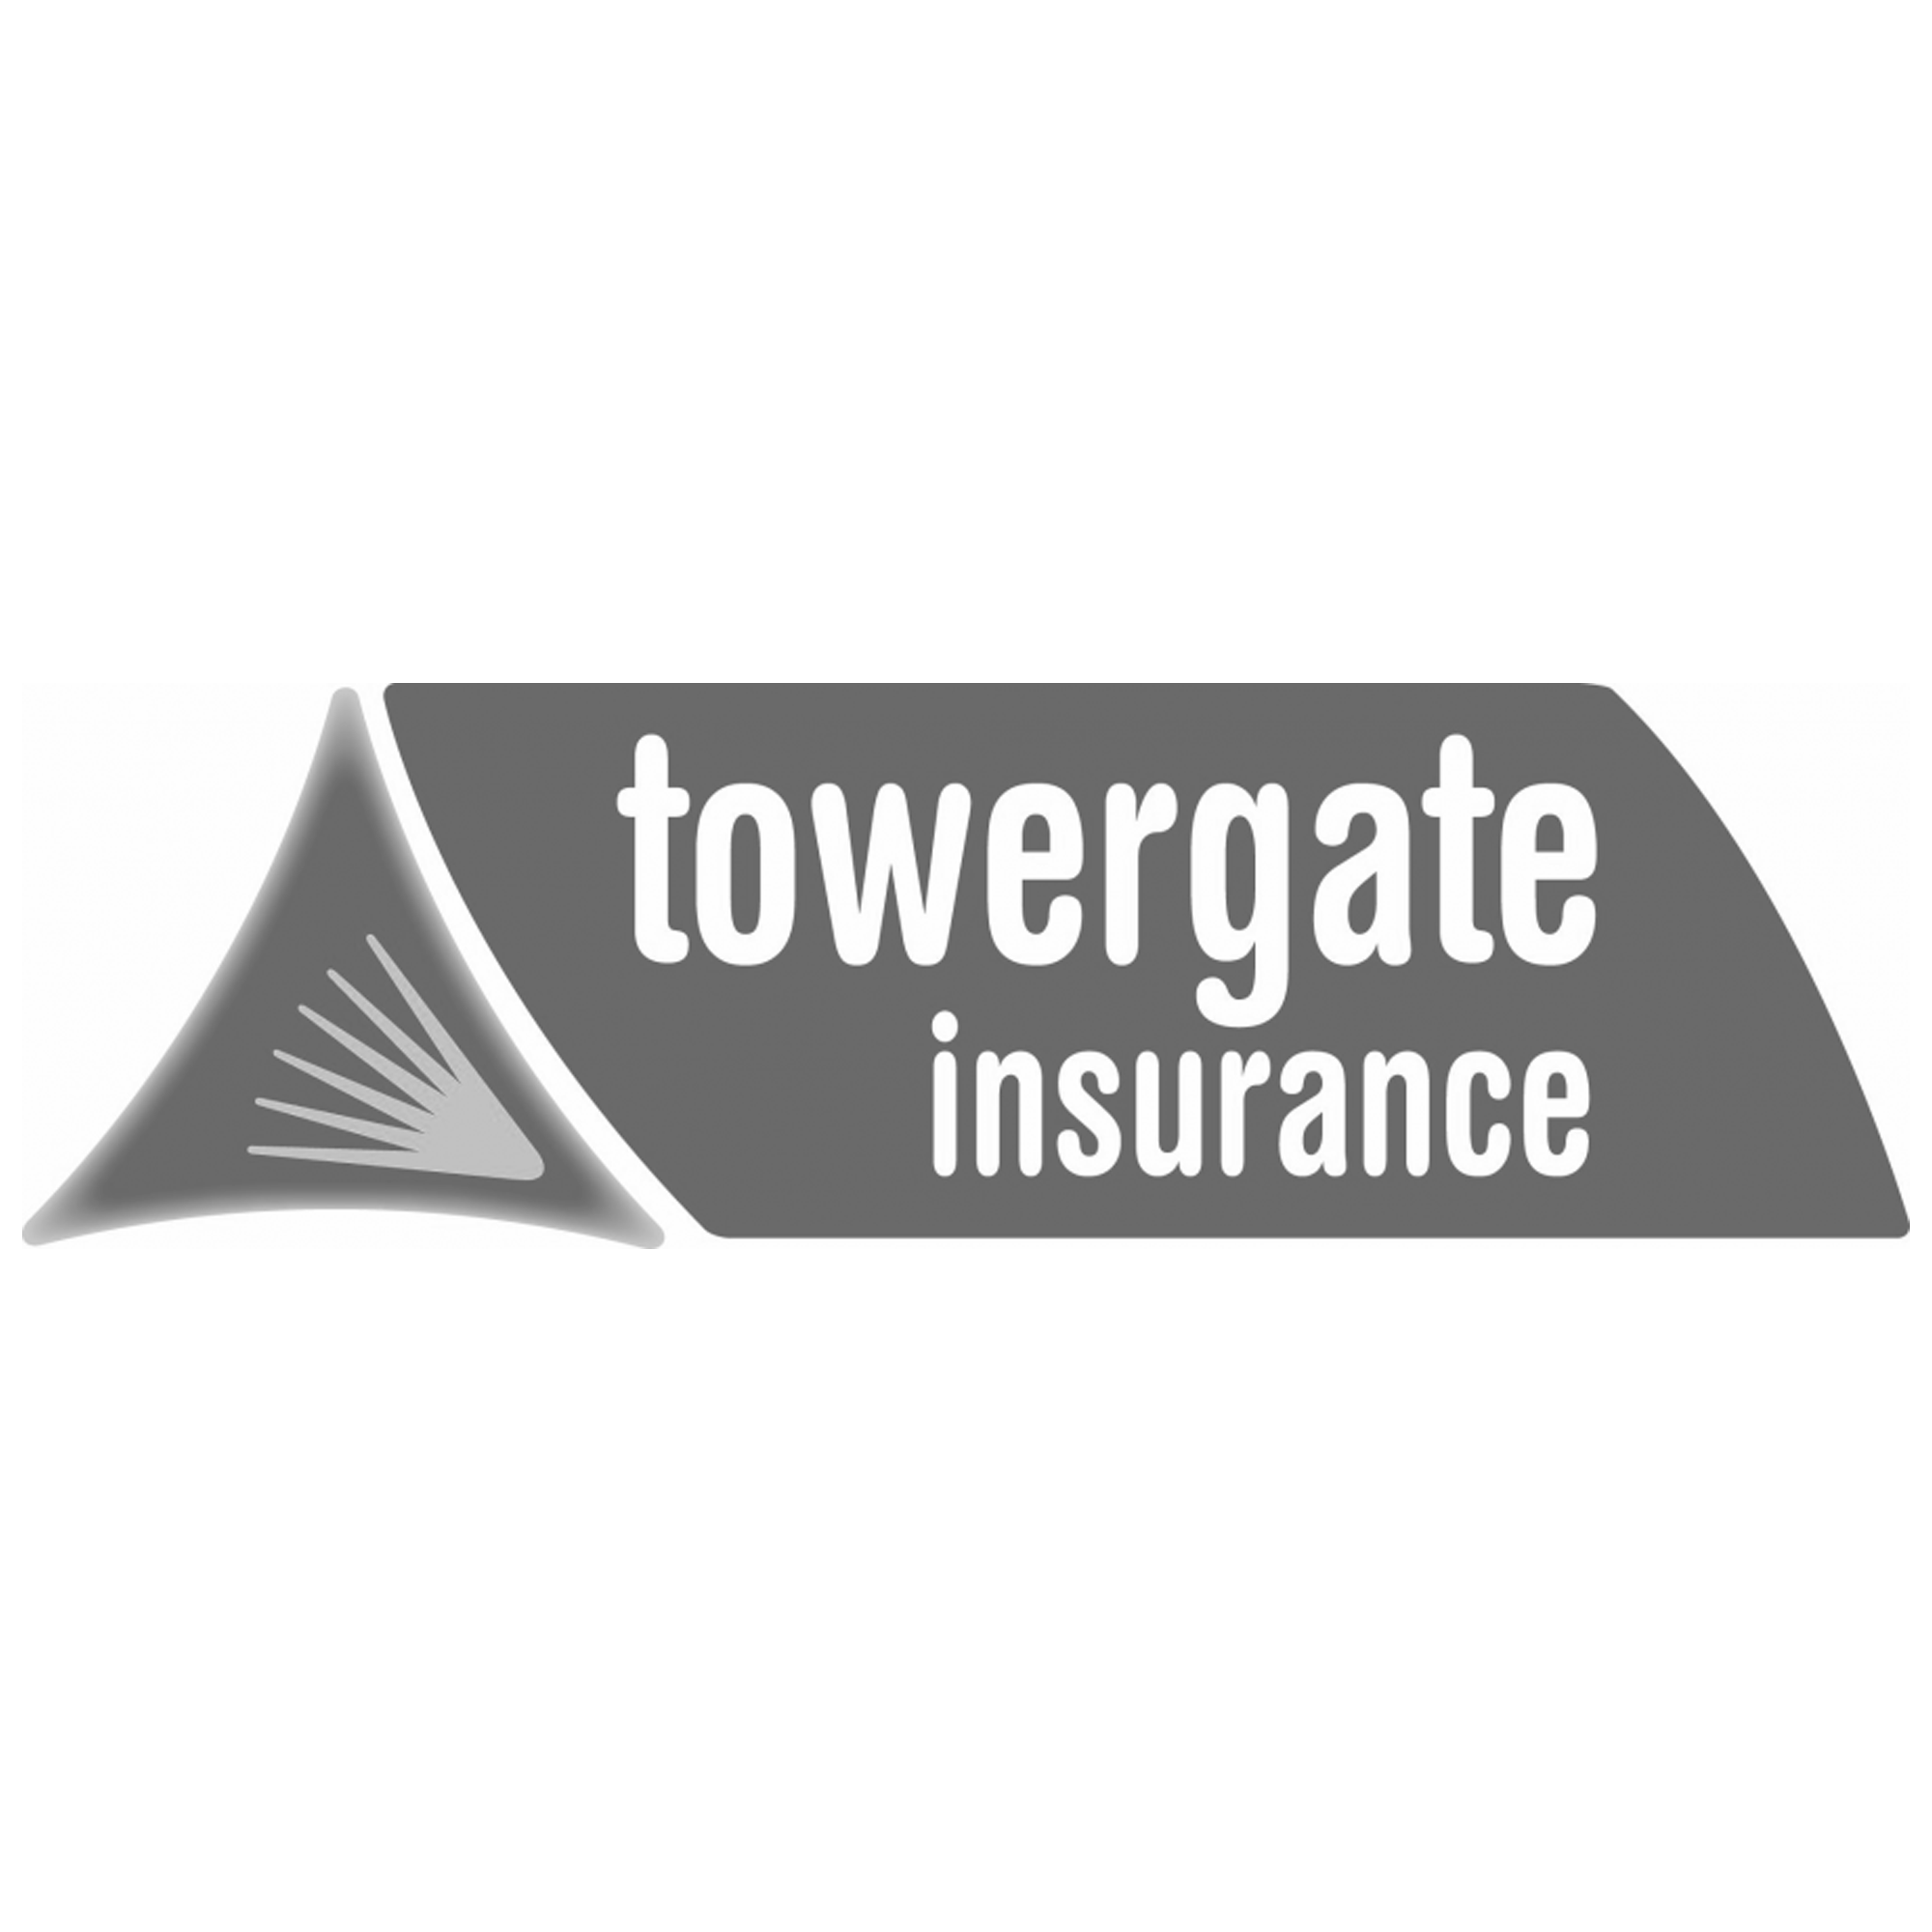 Towergate insurance black and white.png